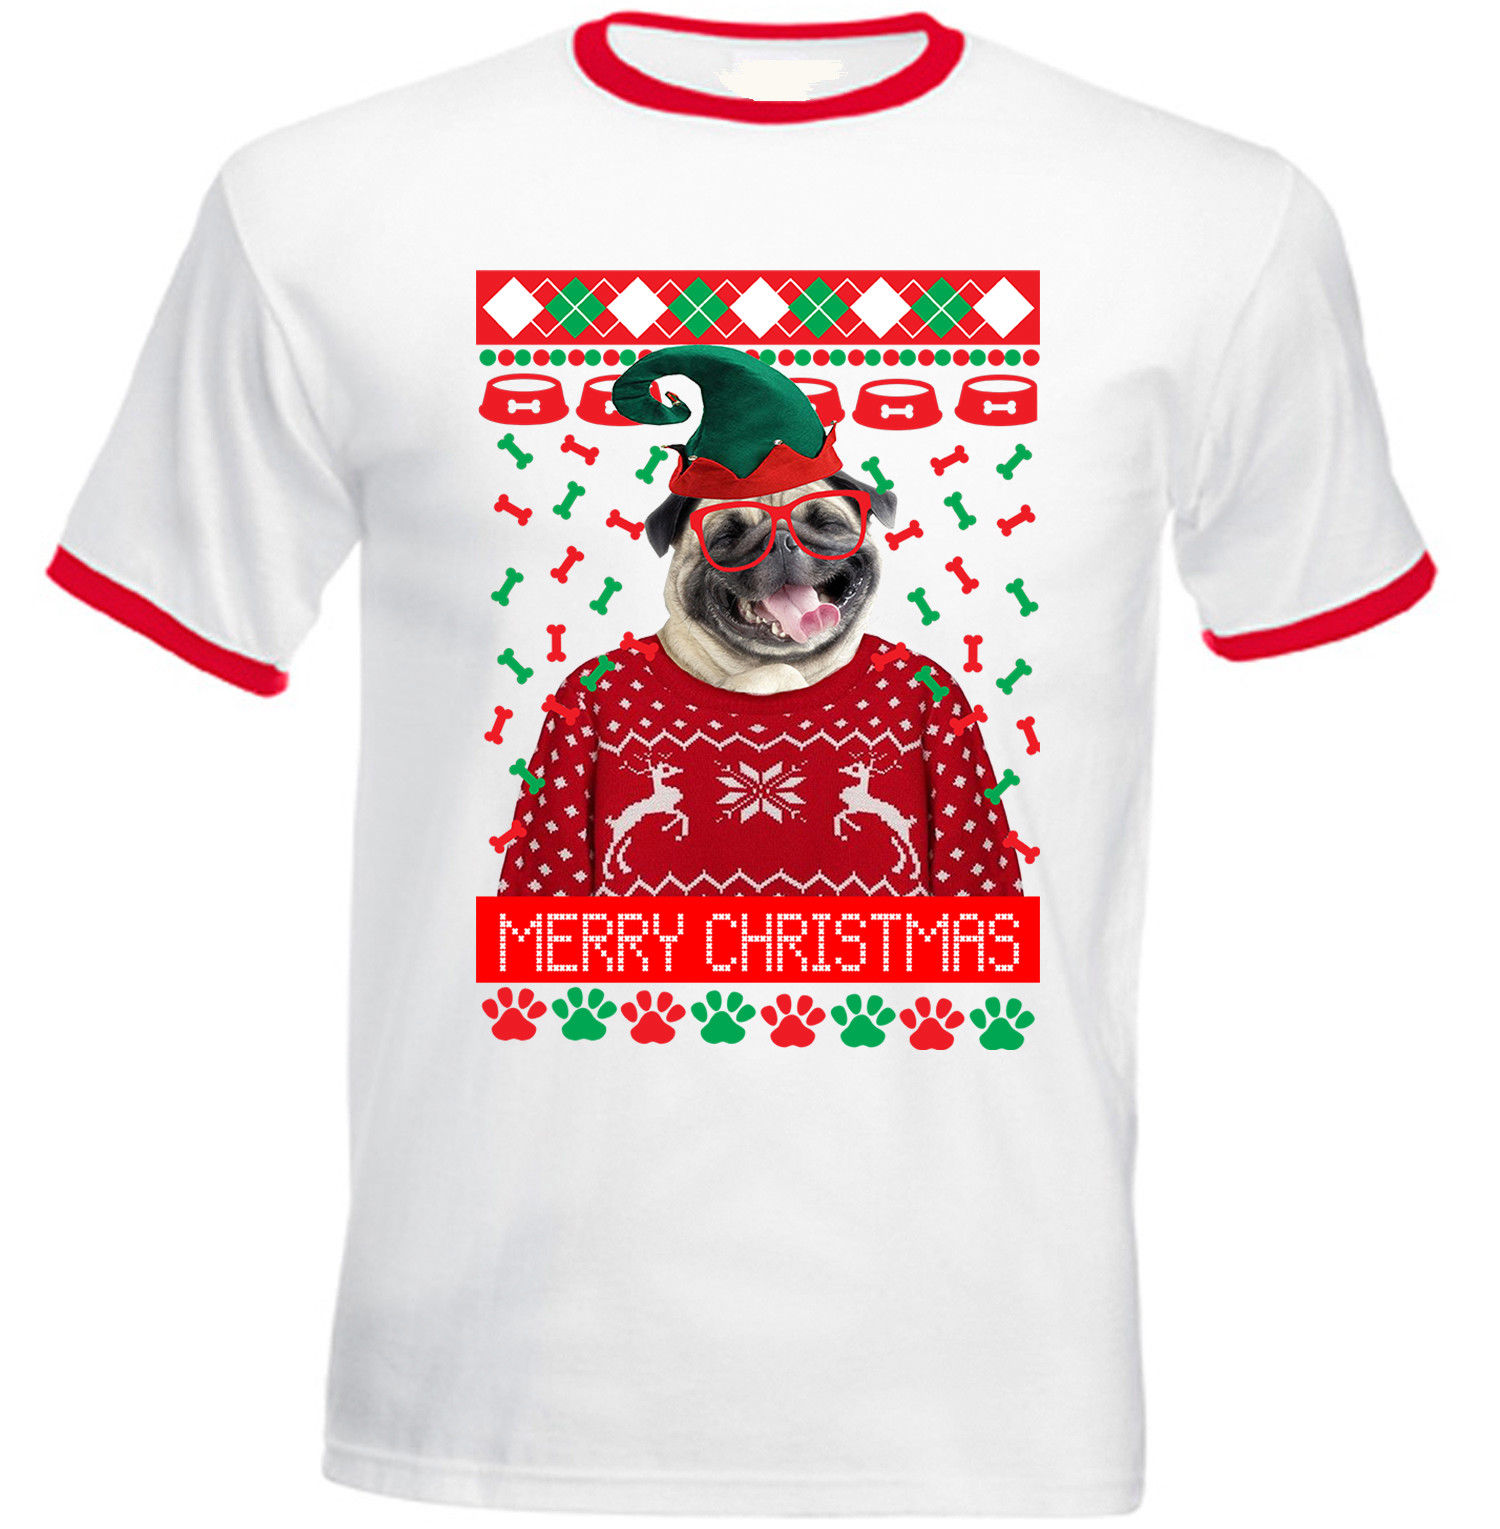 e16417a16 Funny Xmas T Shirts Uk – EDGE Engineering and Consulting Limited